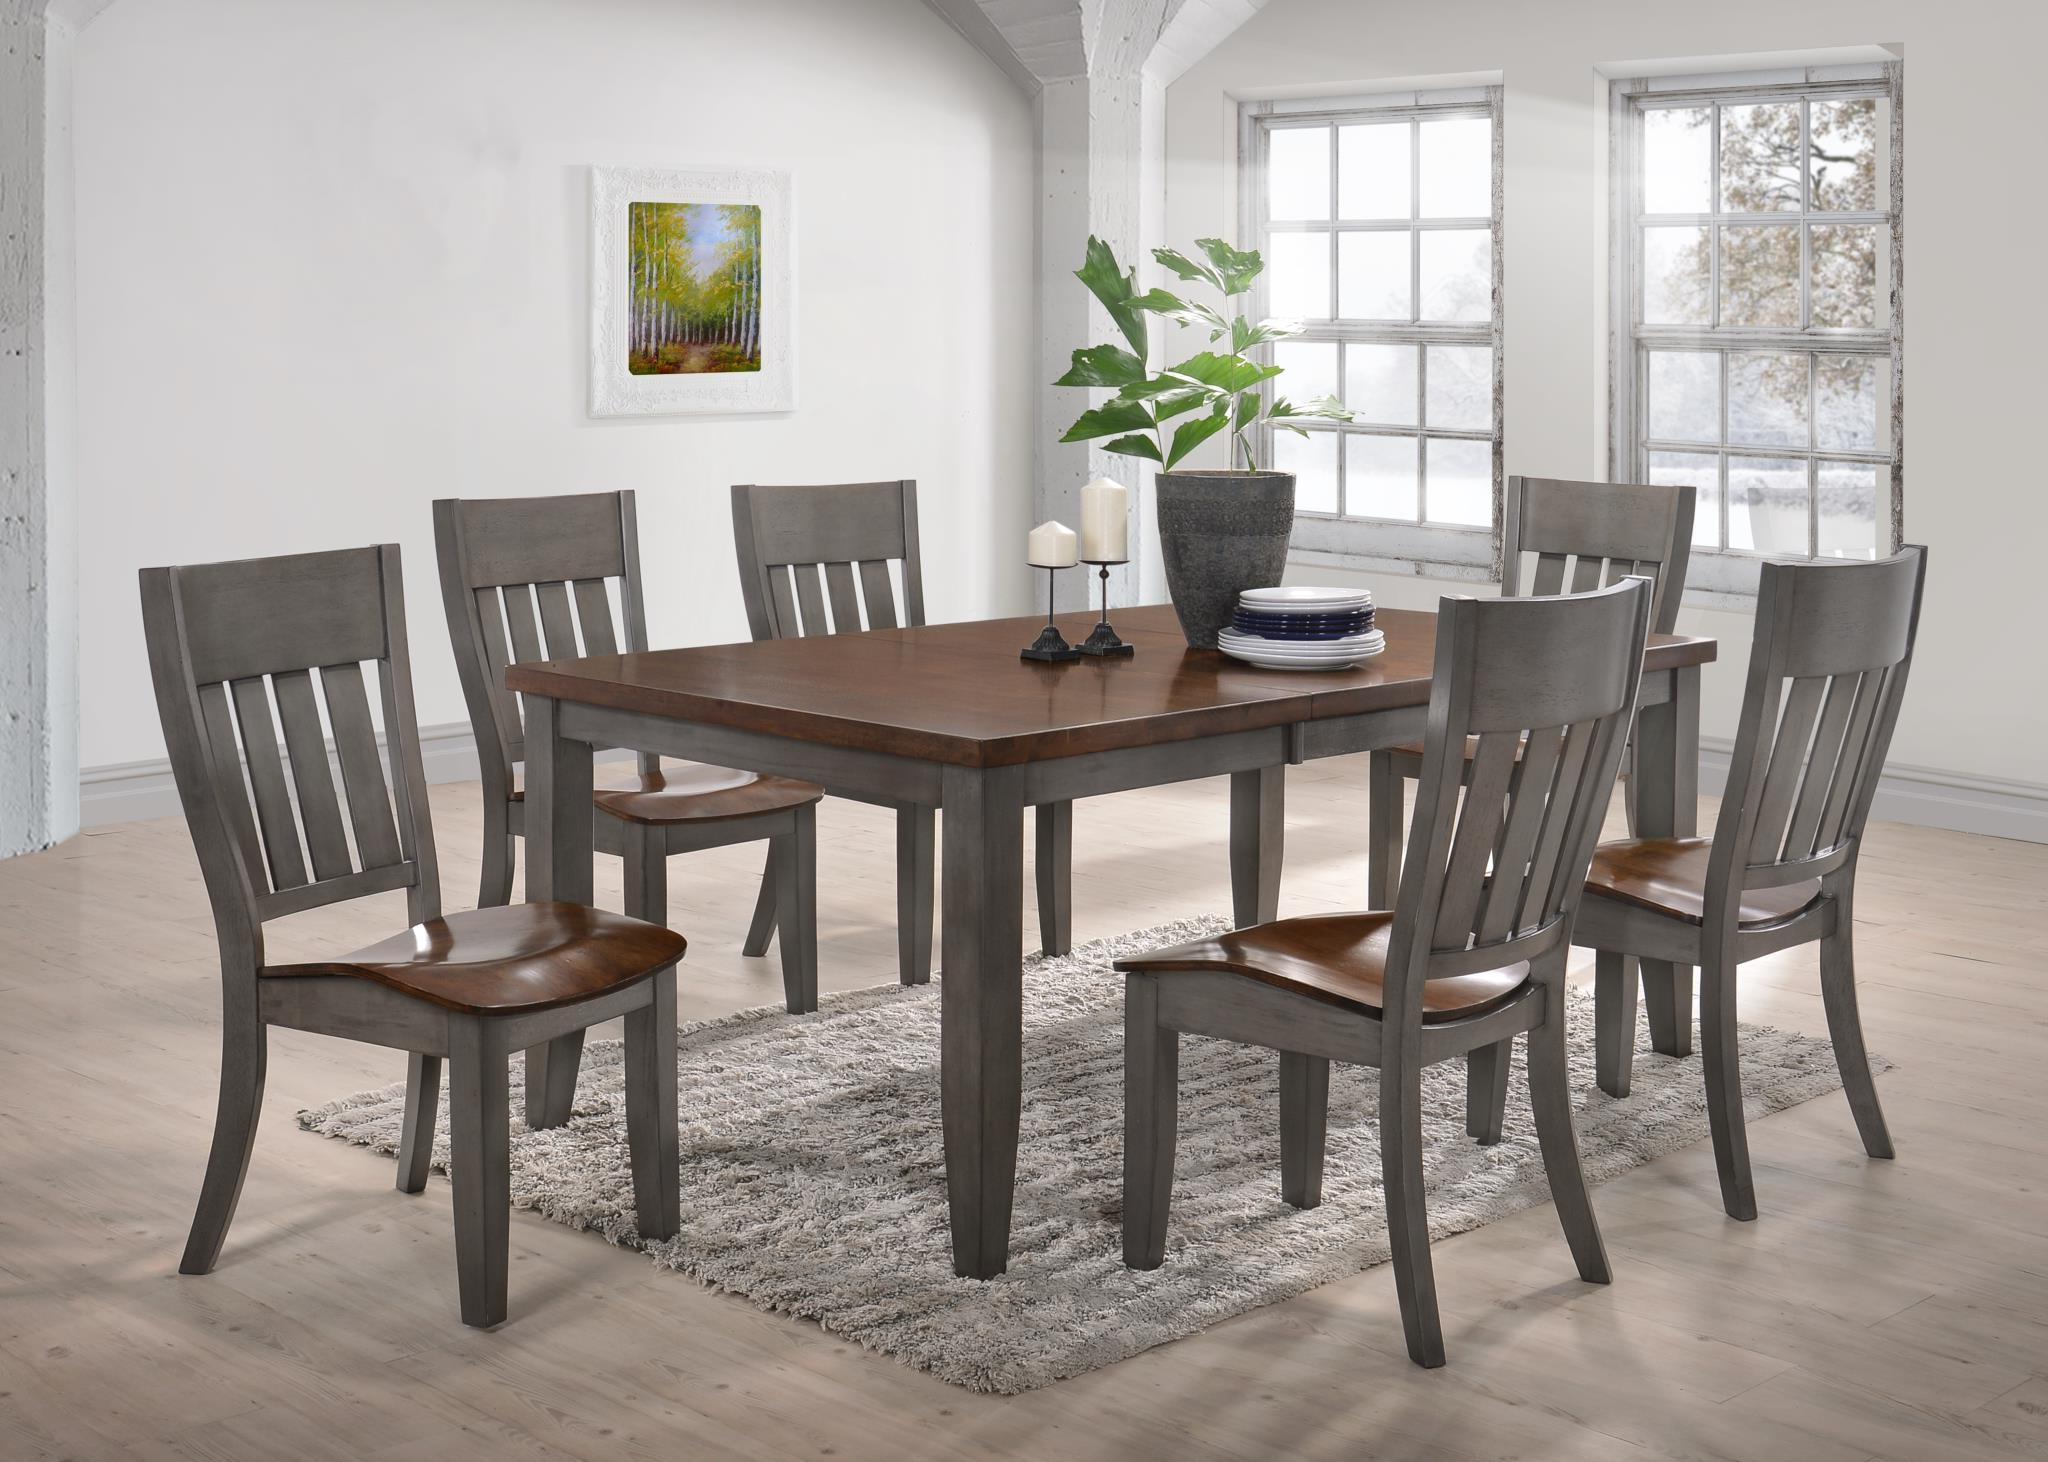 Springfield 3 Piece Dining Sets Throughout 2020 American Heritage – Cedar Hill Furniture (View 25 of 25)